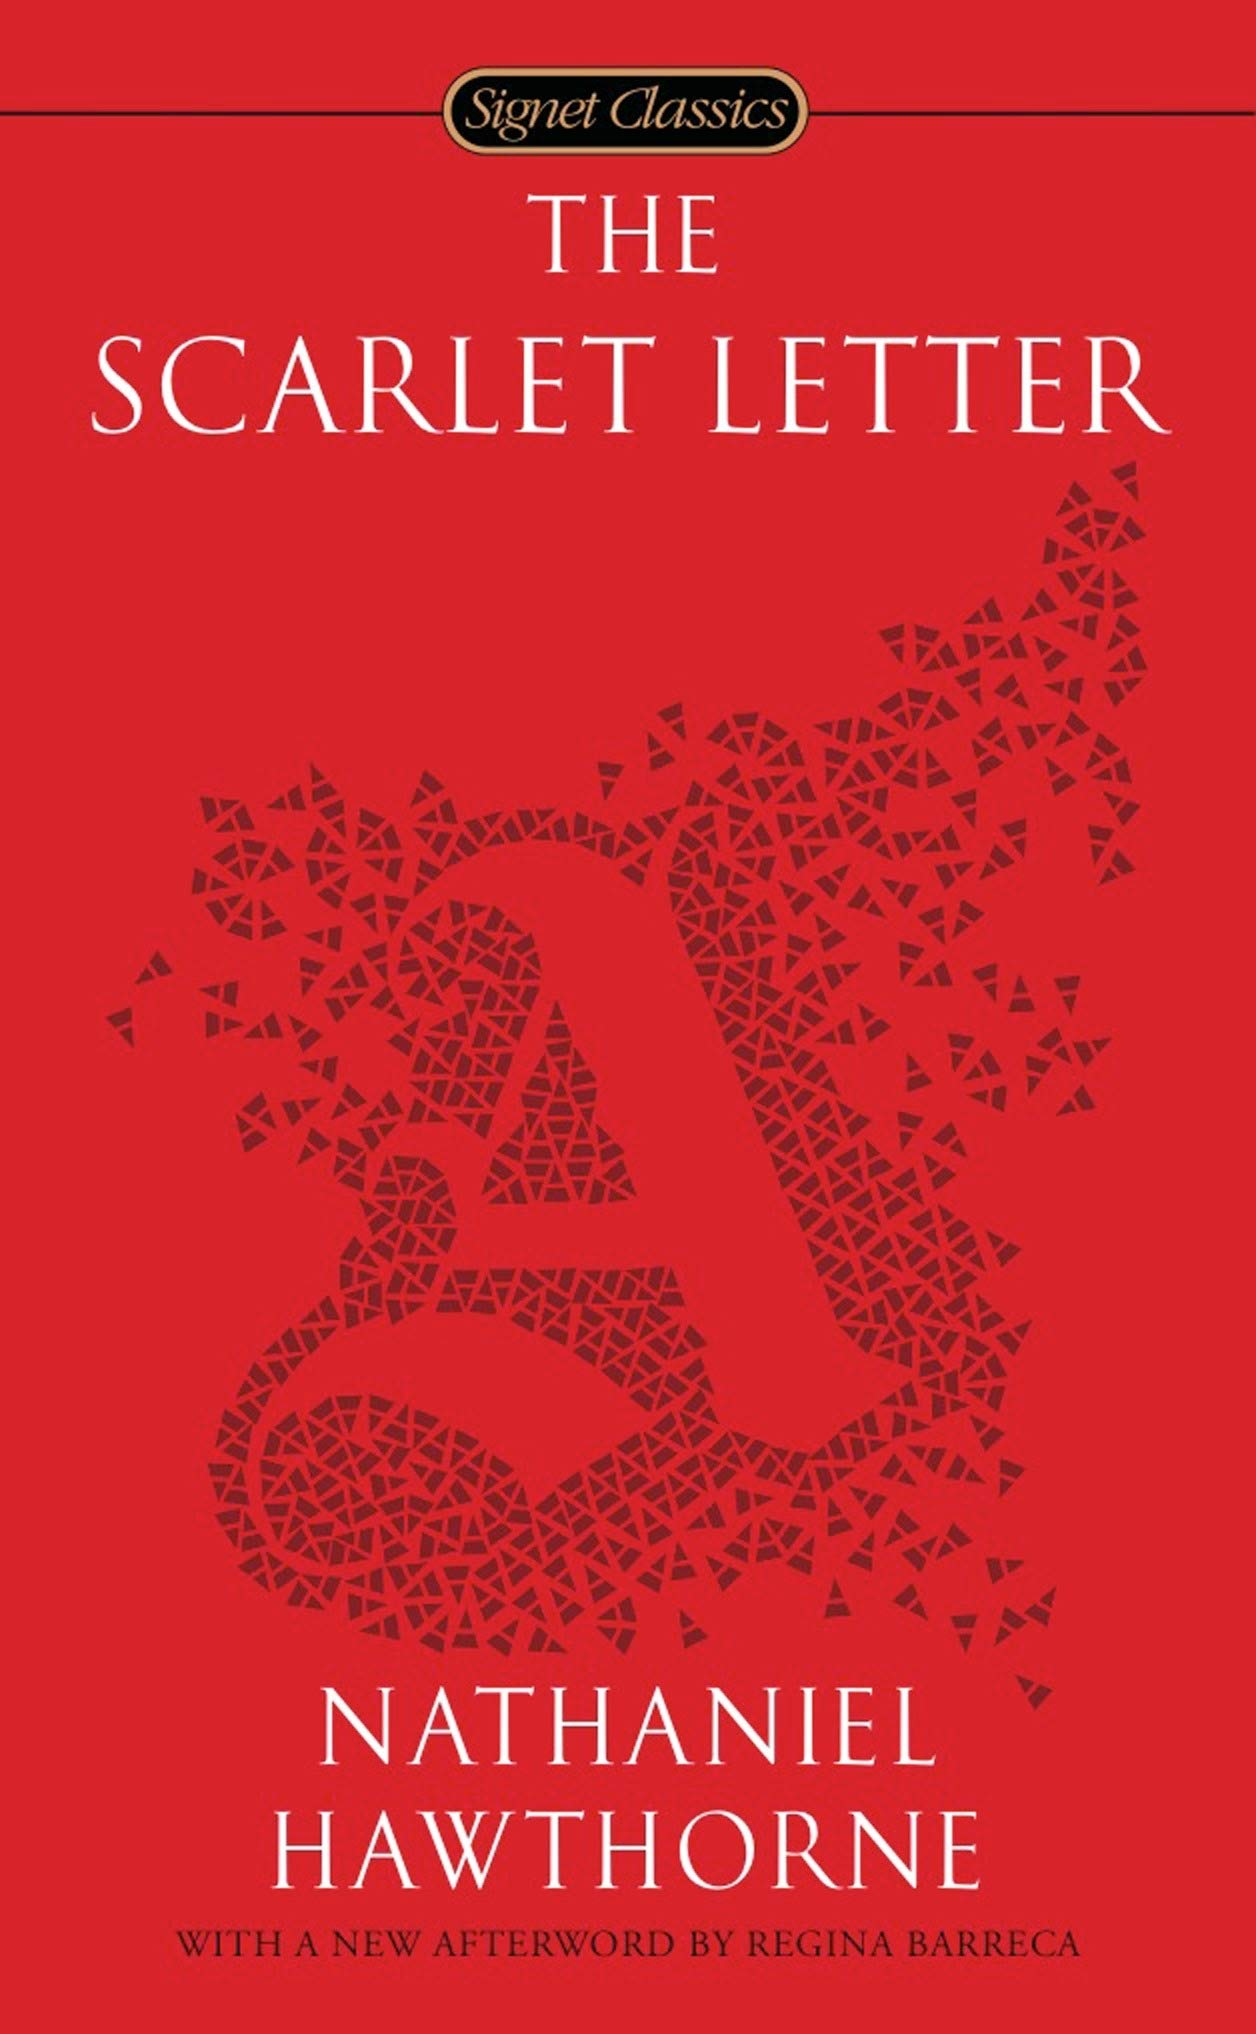 The Scarlet Letter (Signet Classics): Hawthorne, Nathaniel ...